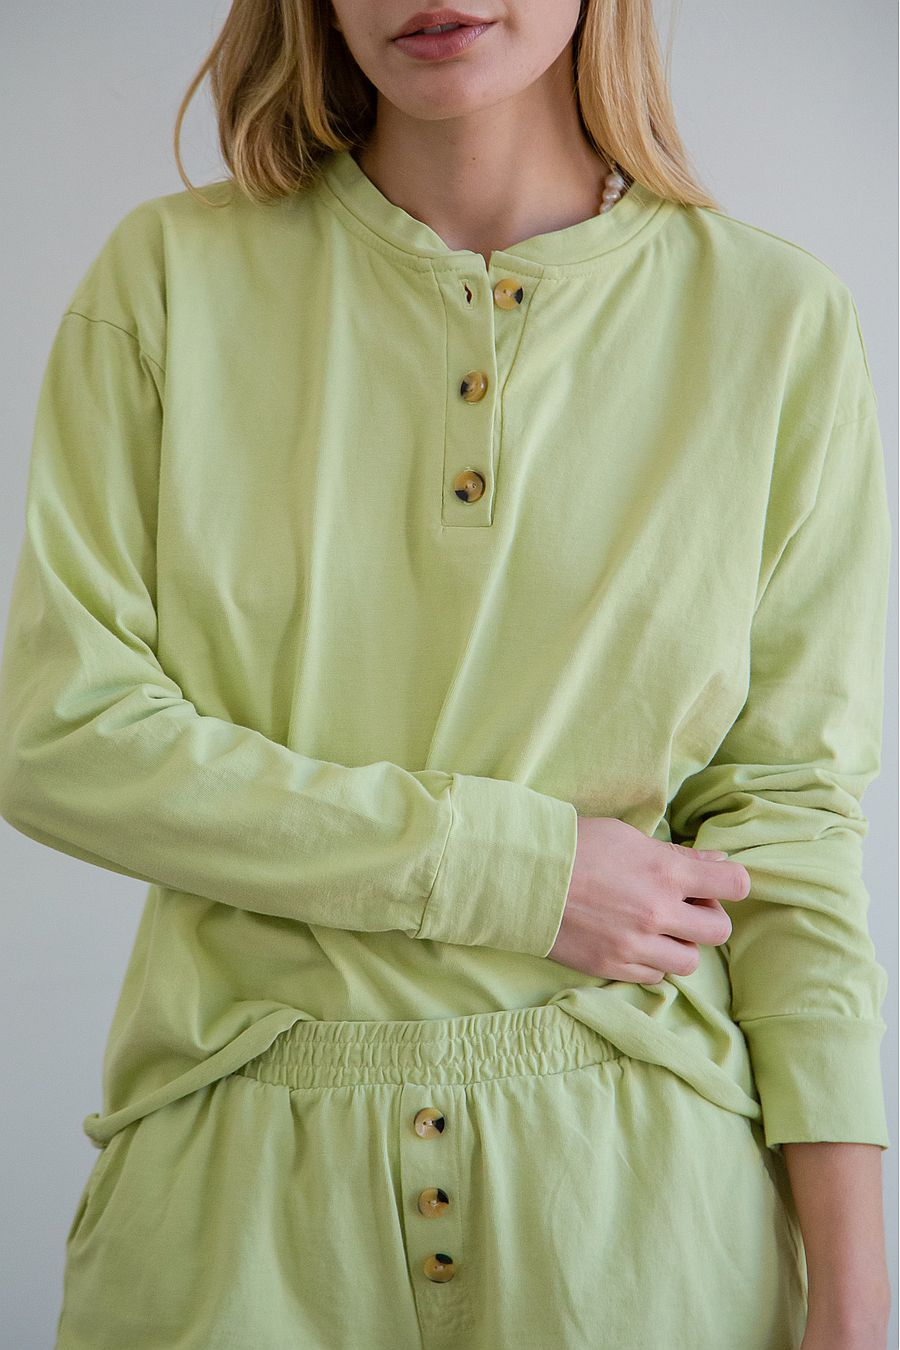 DONNI. Henley Tee - Lime